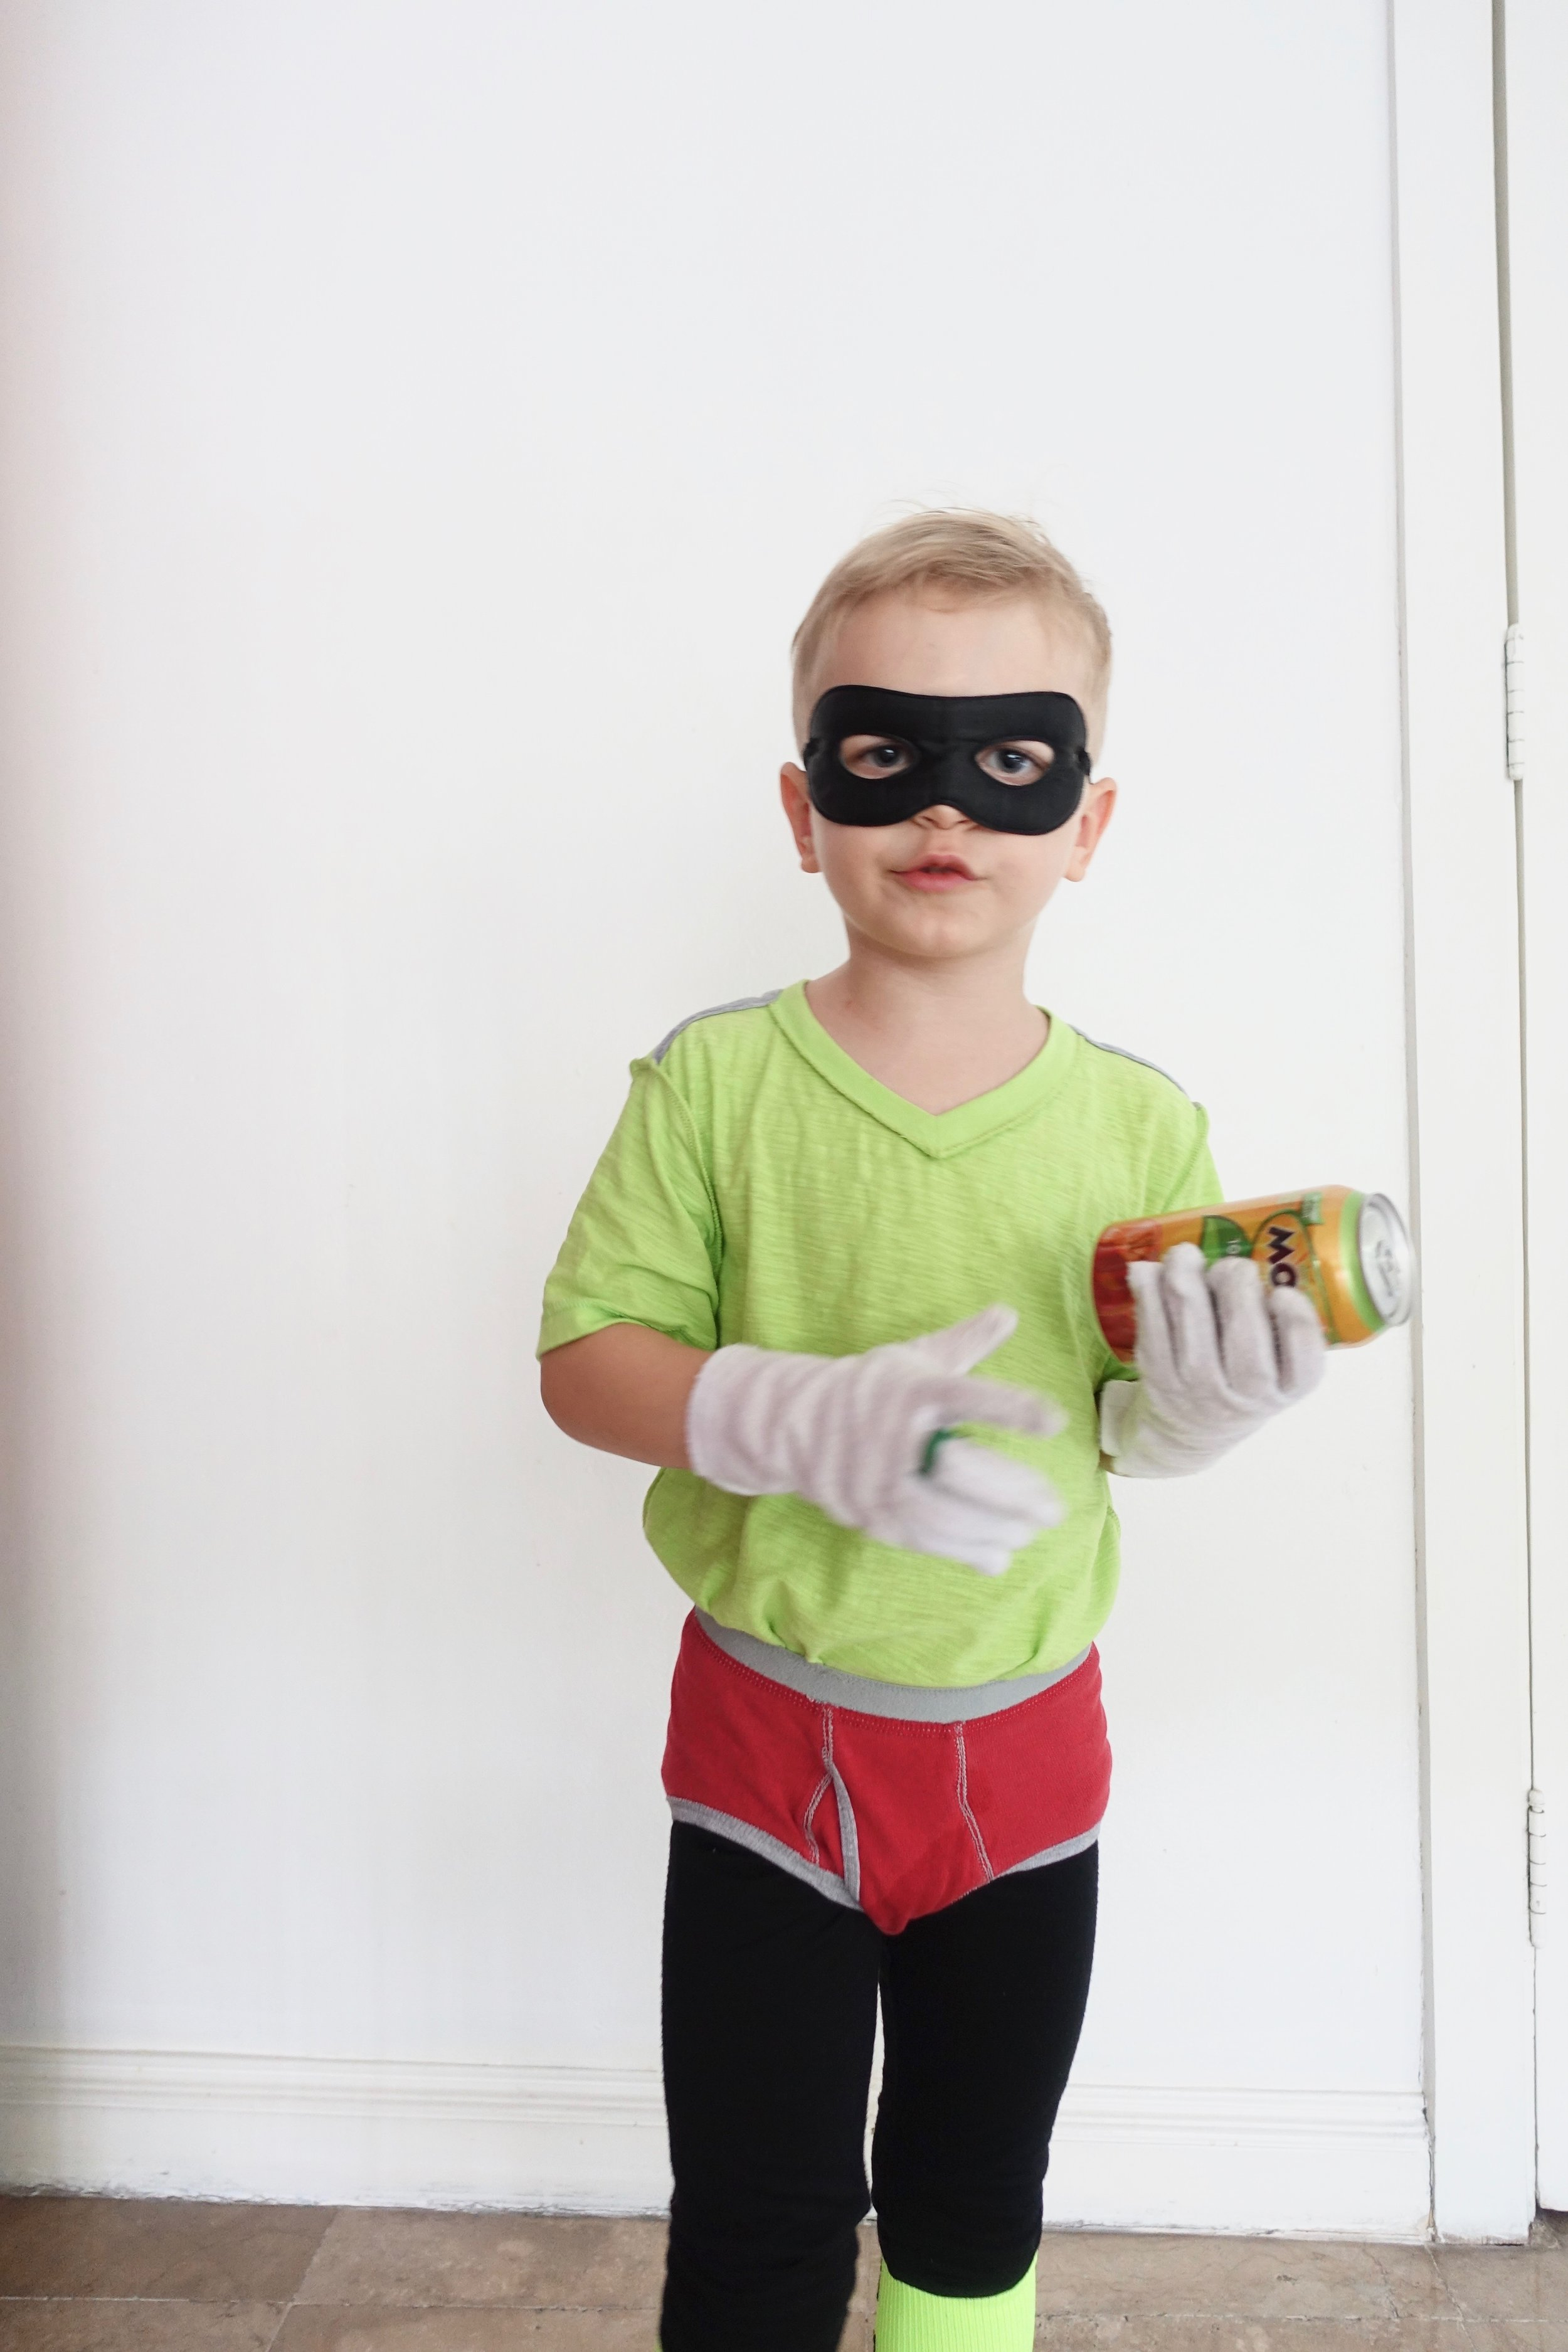 My Super Hero - Super heroes need fuel too! Mom Hack: dilute Mott's Apple Juice with water 1:1 equal parts, your kids will never know!